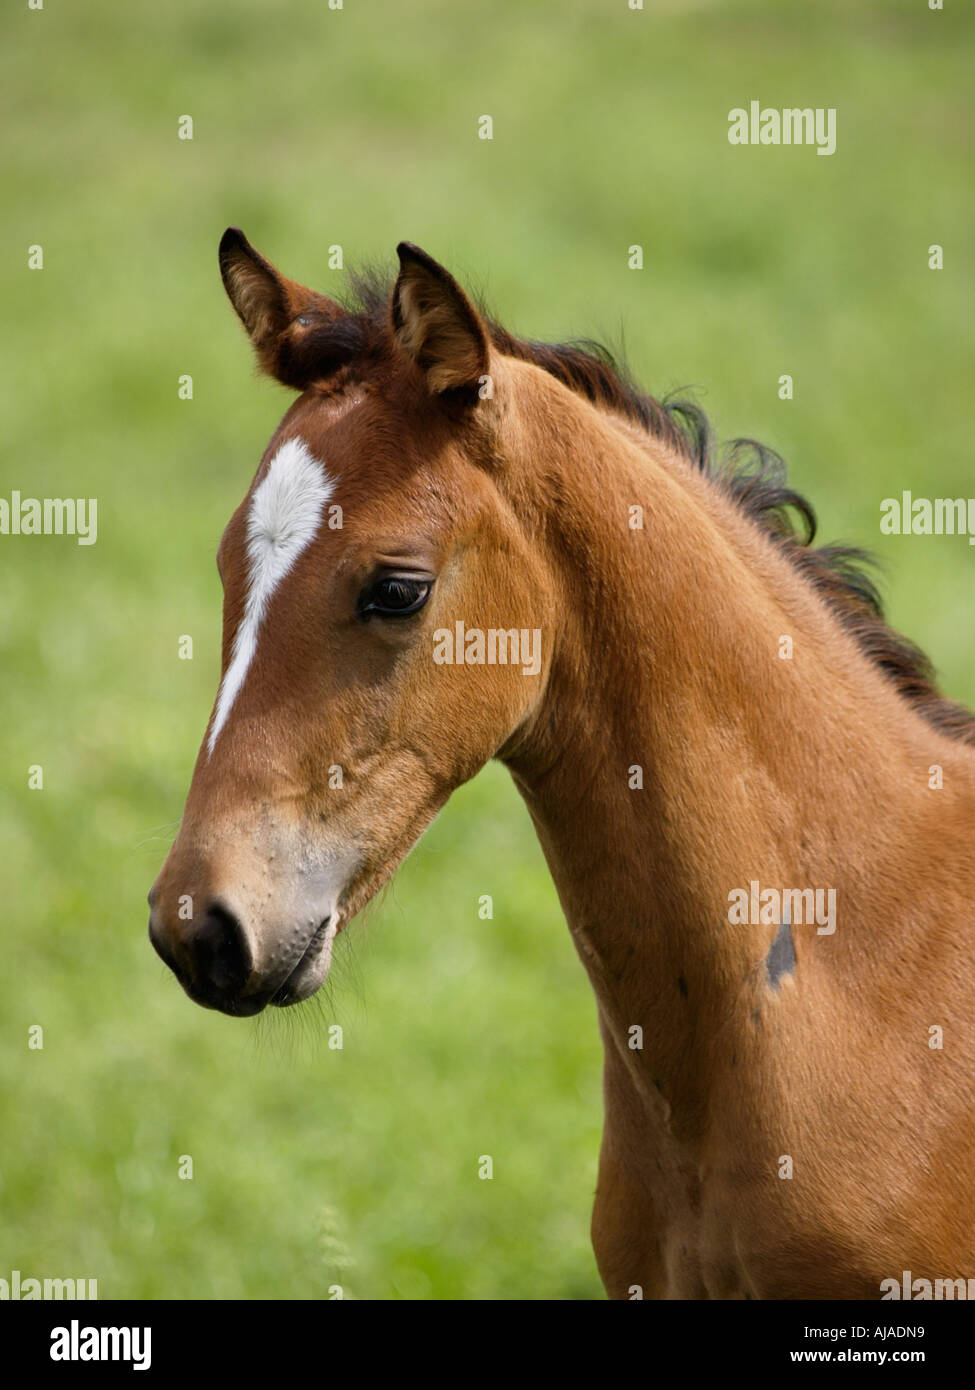 Portrait of a young thoroughbred foal named Bambi Ruurlo Gelderland the Netherlands - Stock Image